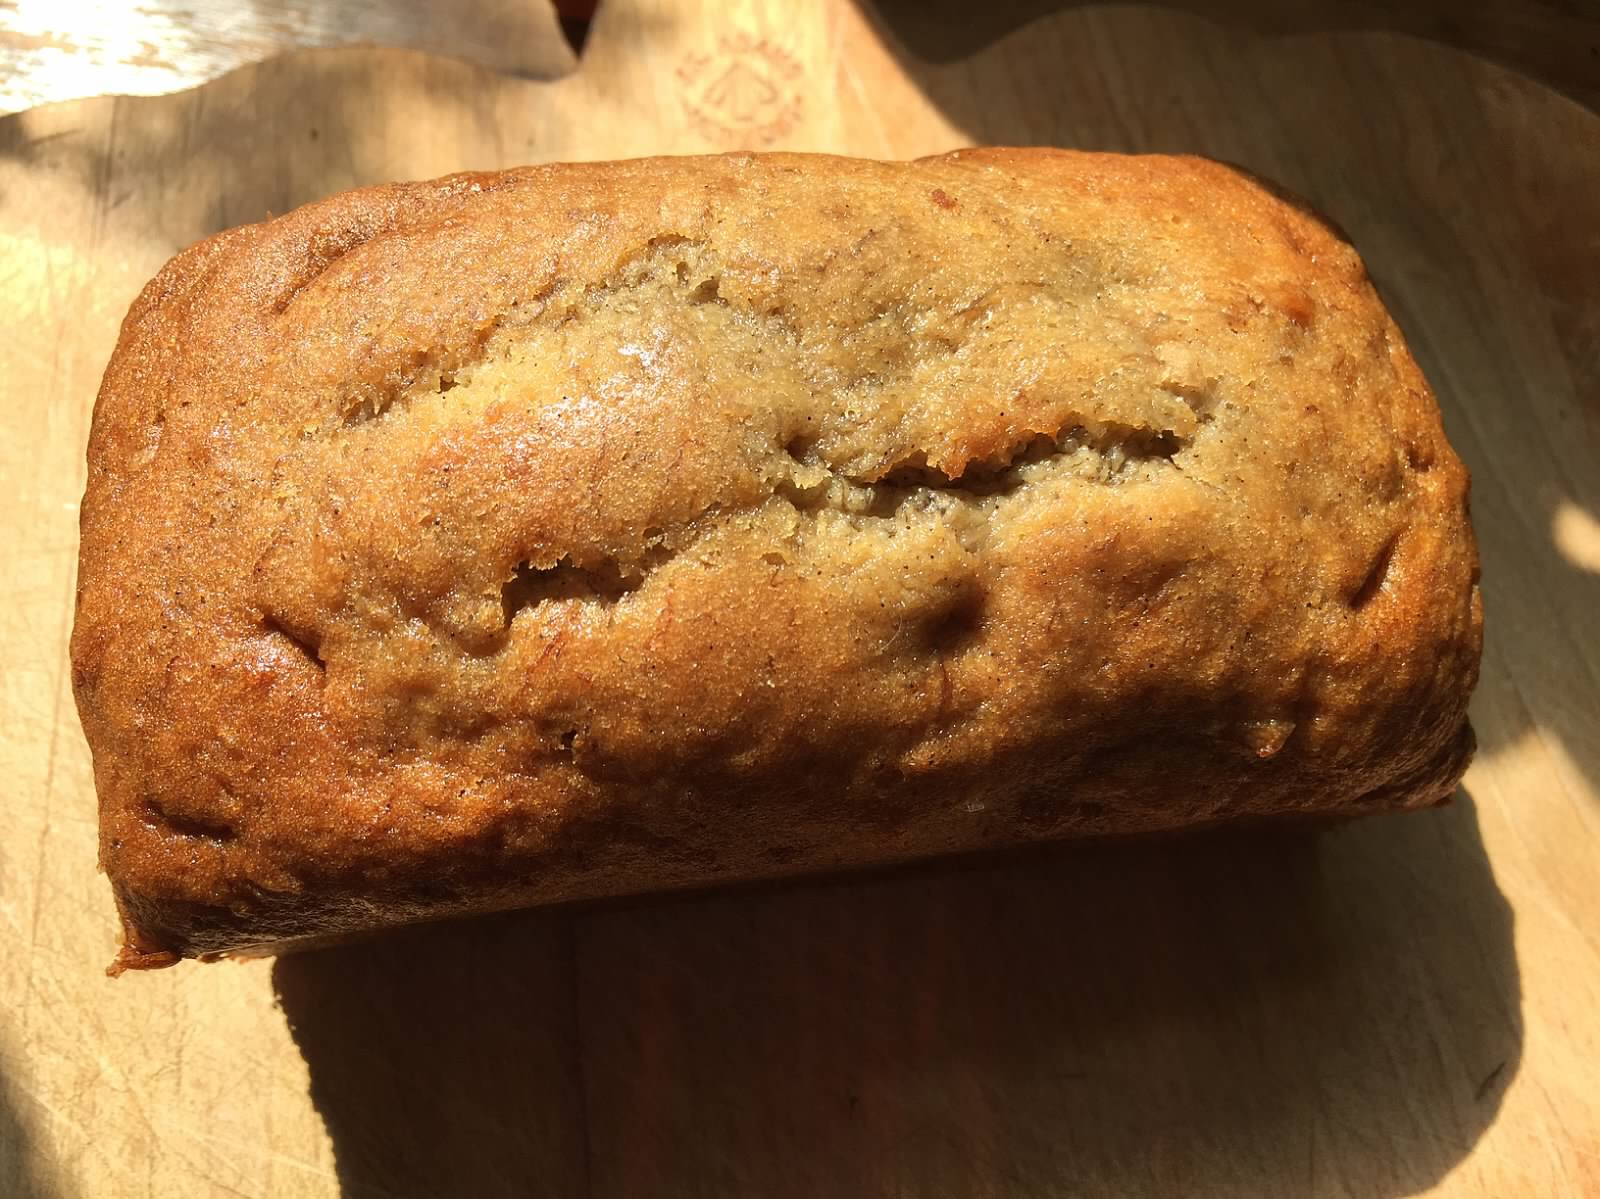 Cinnamon Brown Sugar Banana Bread (No Nuts)